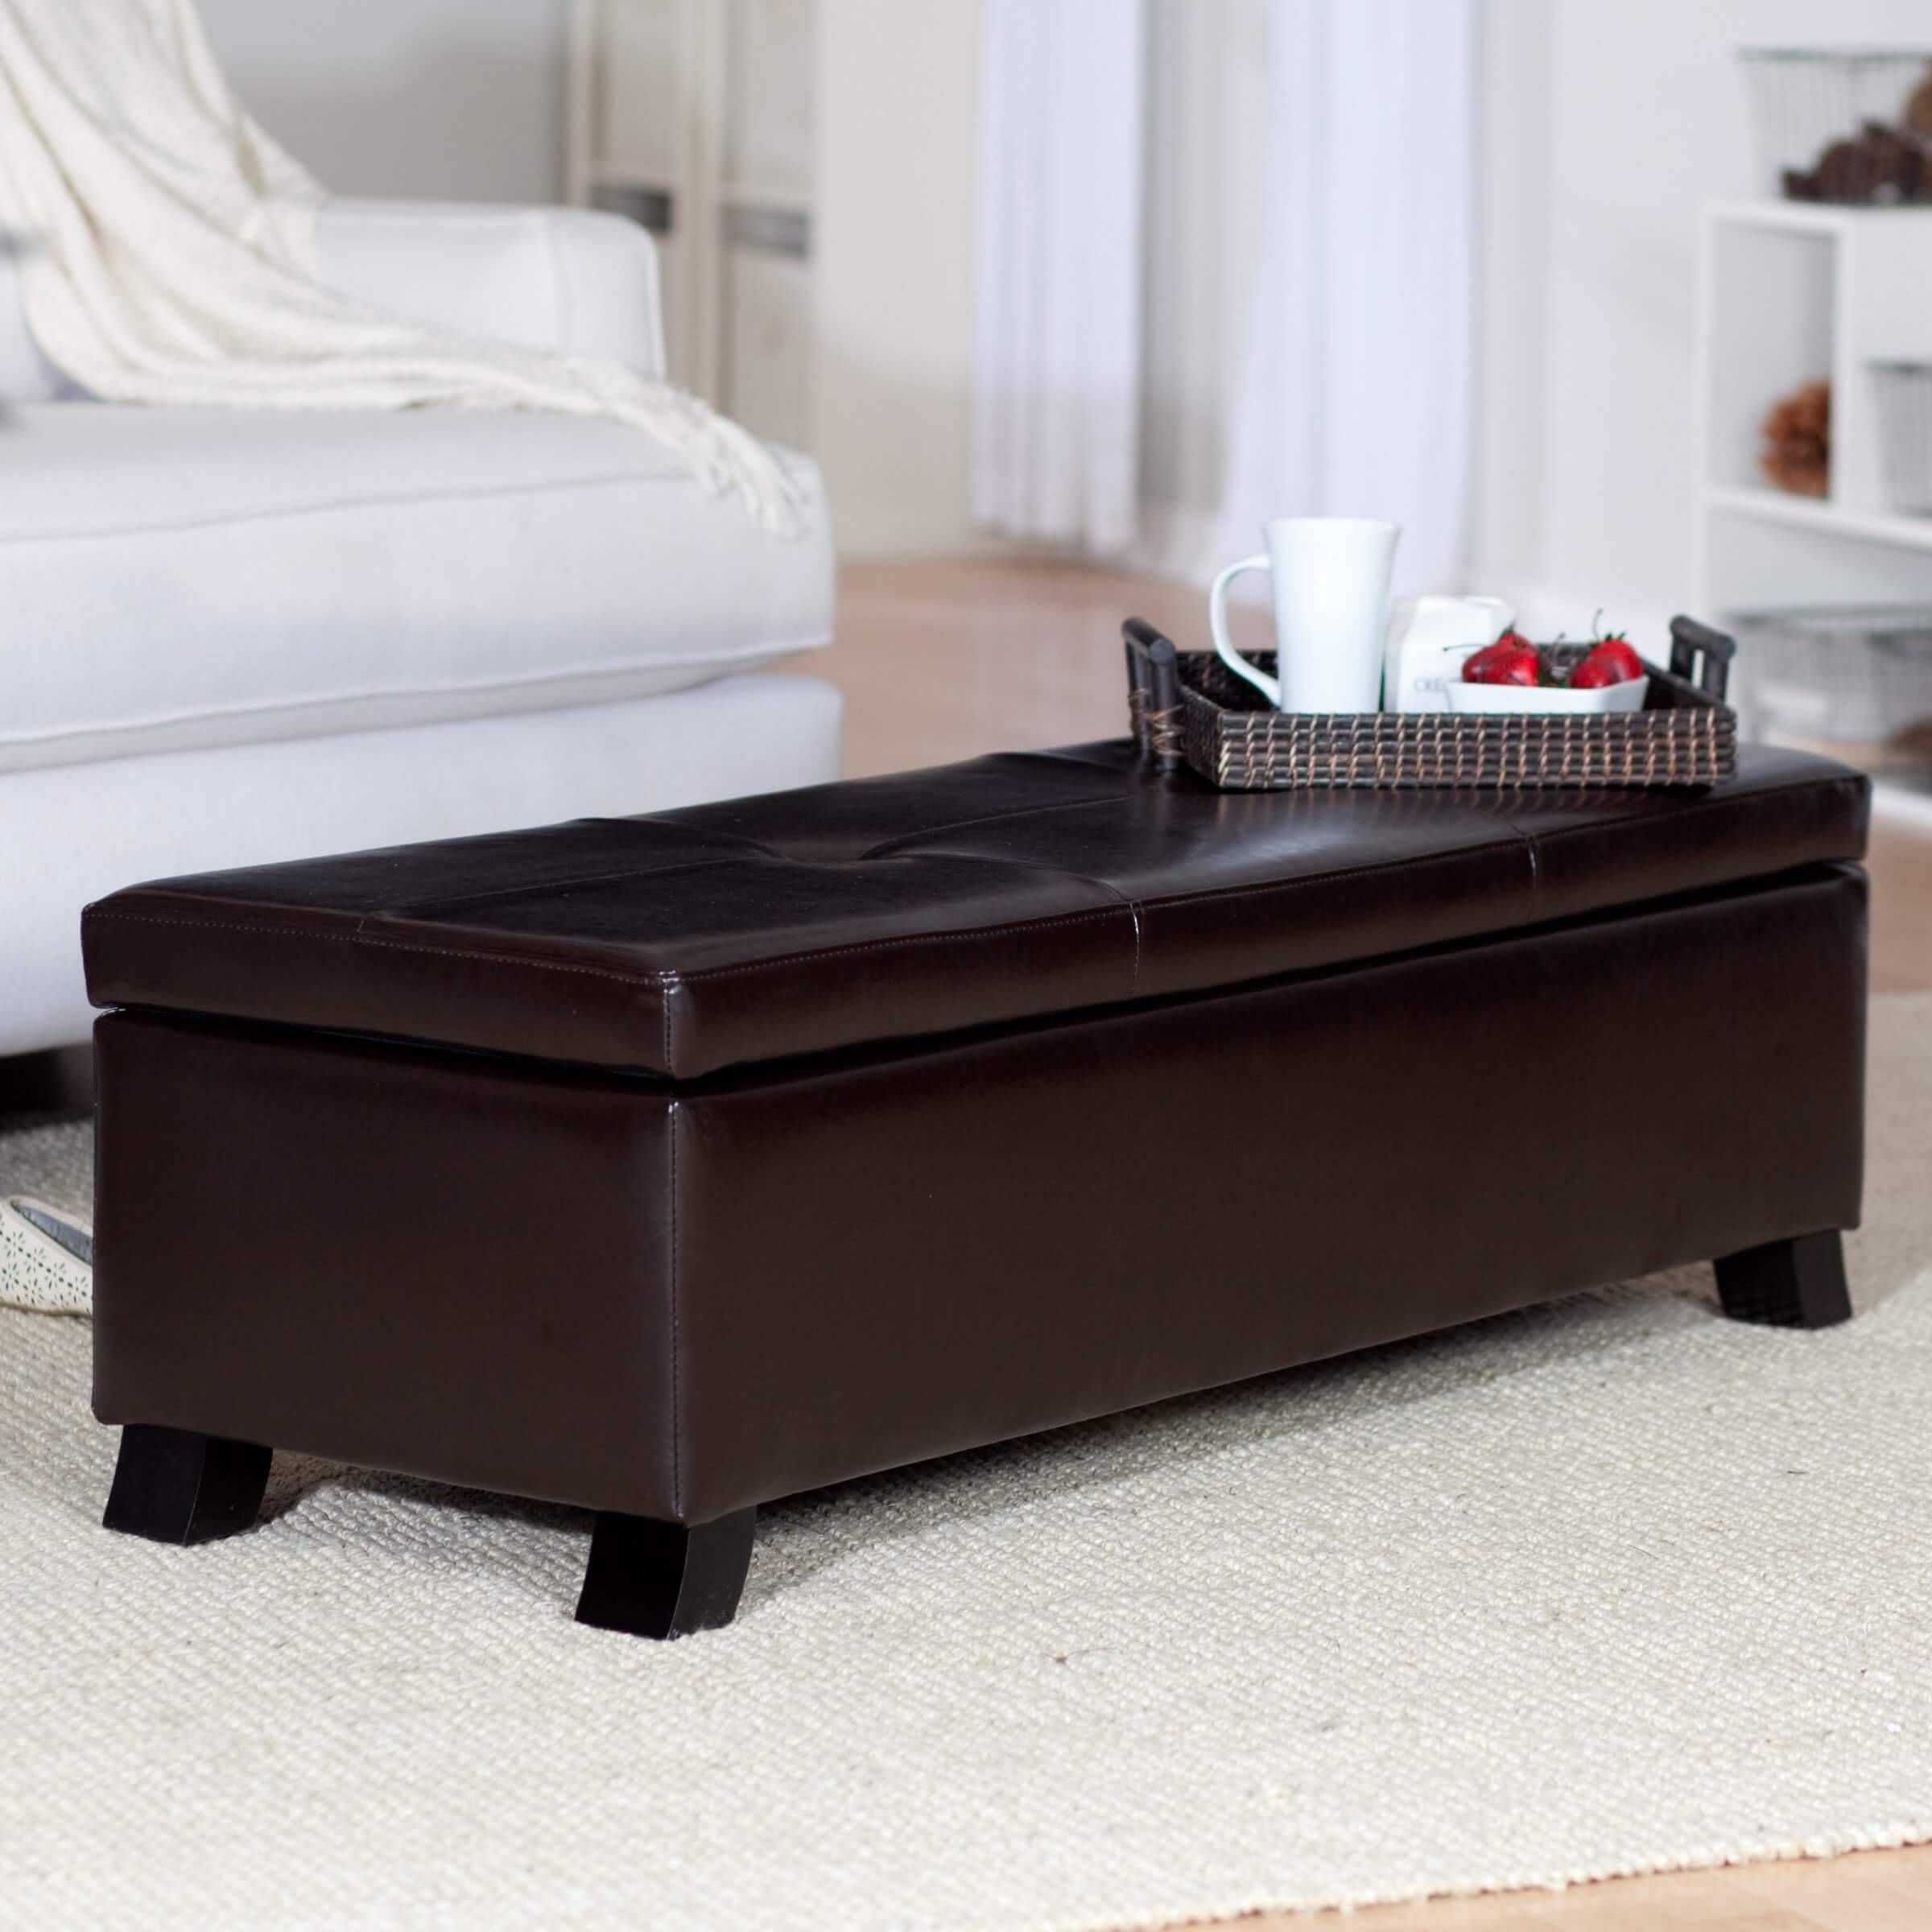 36 Top Brown Leather Ottoman Coffee Tables intended for Dark Wood Coffee Table Storages (Image 2 of 30)